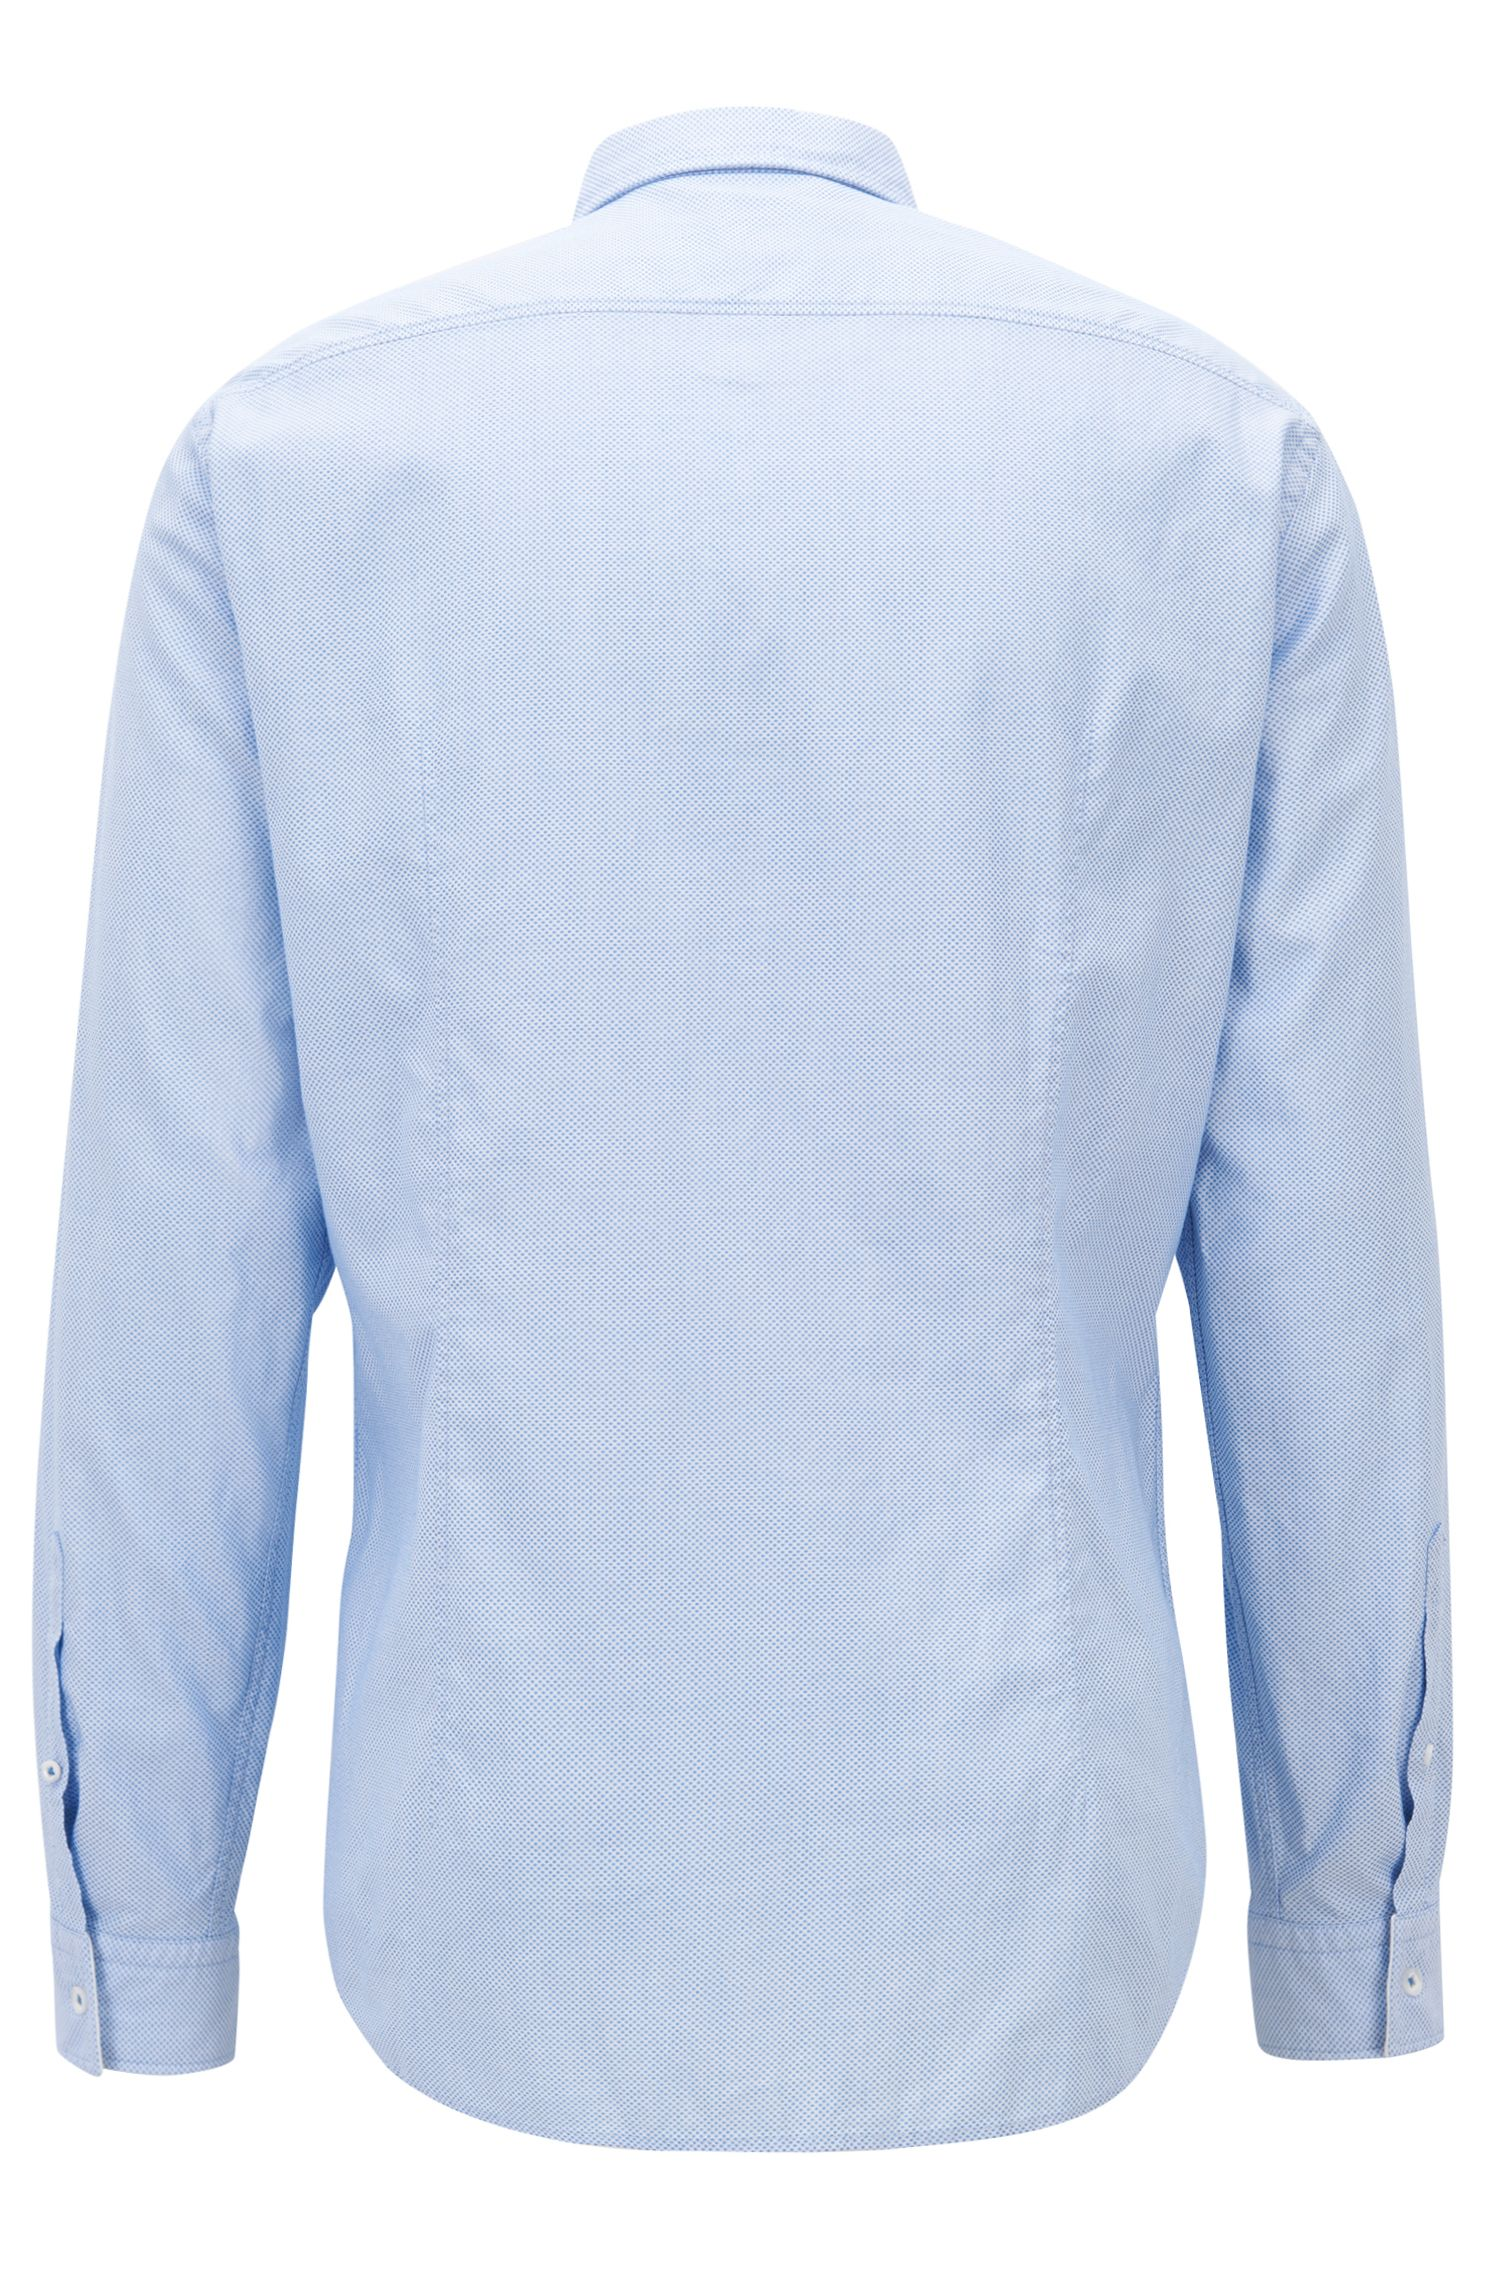 Hugo Boss - Slim-fit shirt in washed dobby cotton - 3